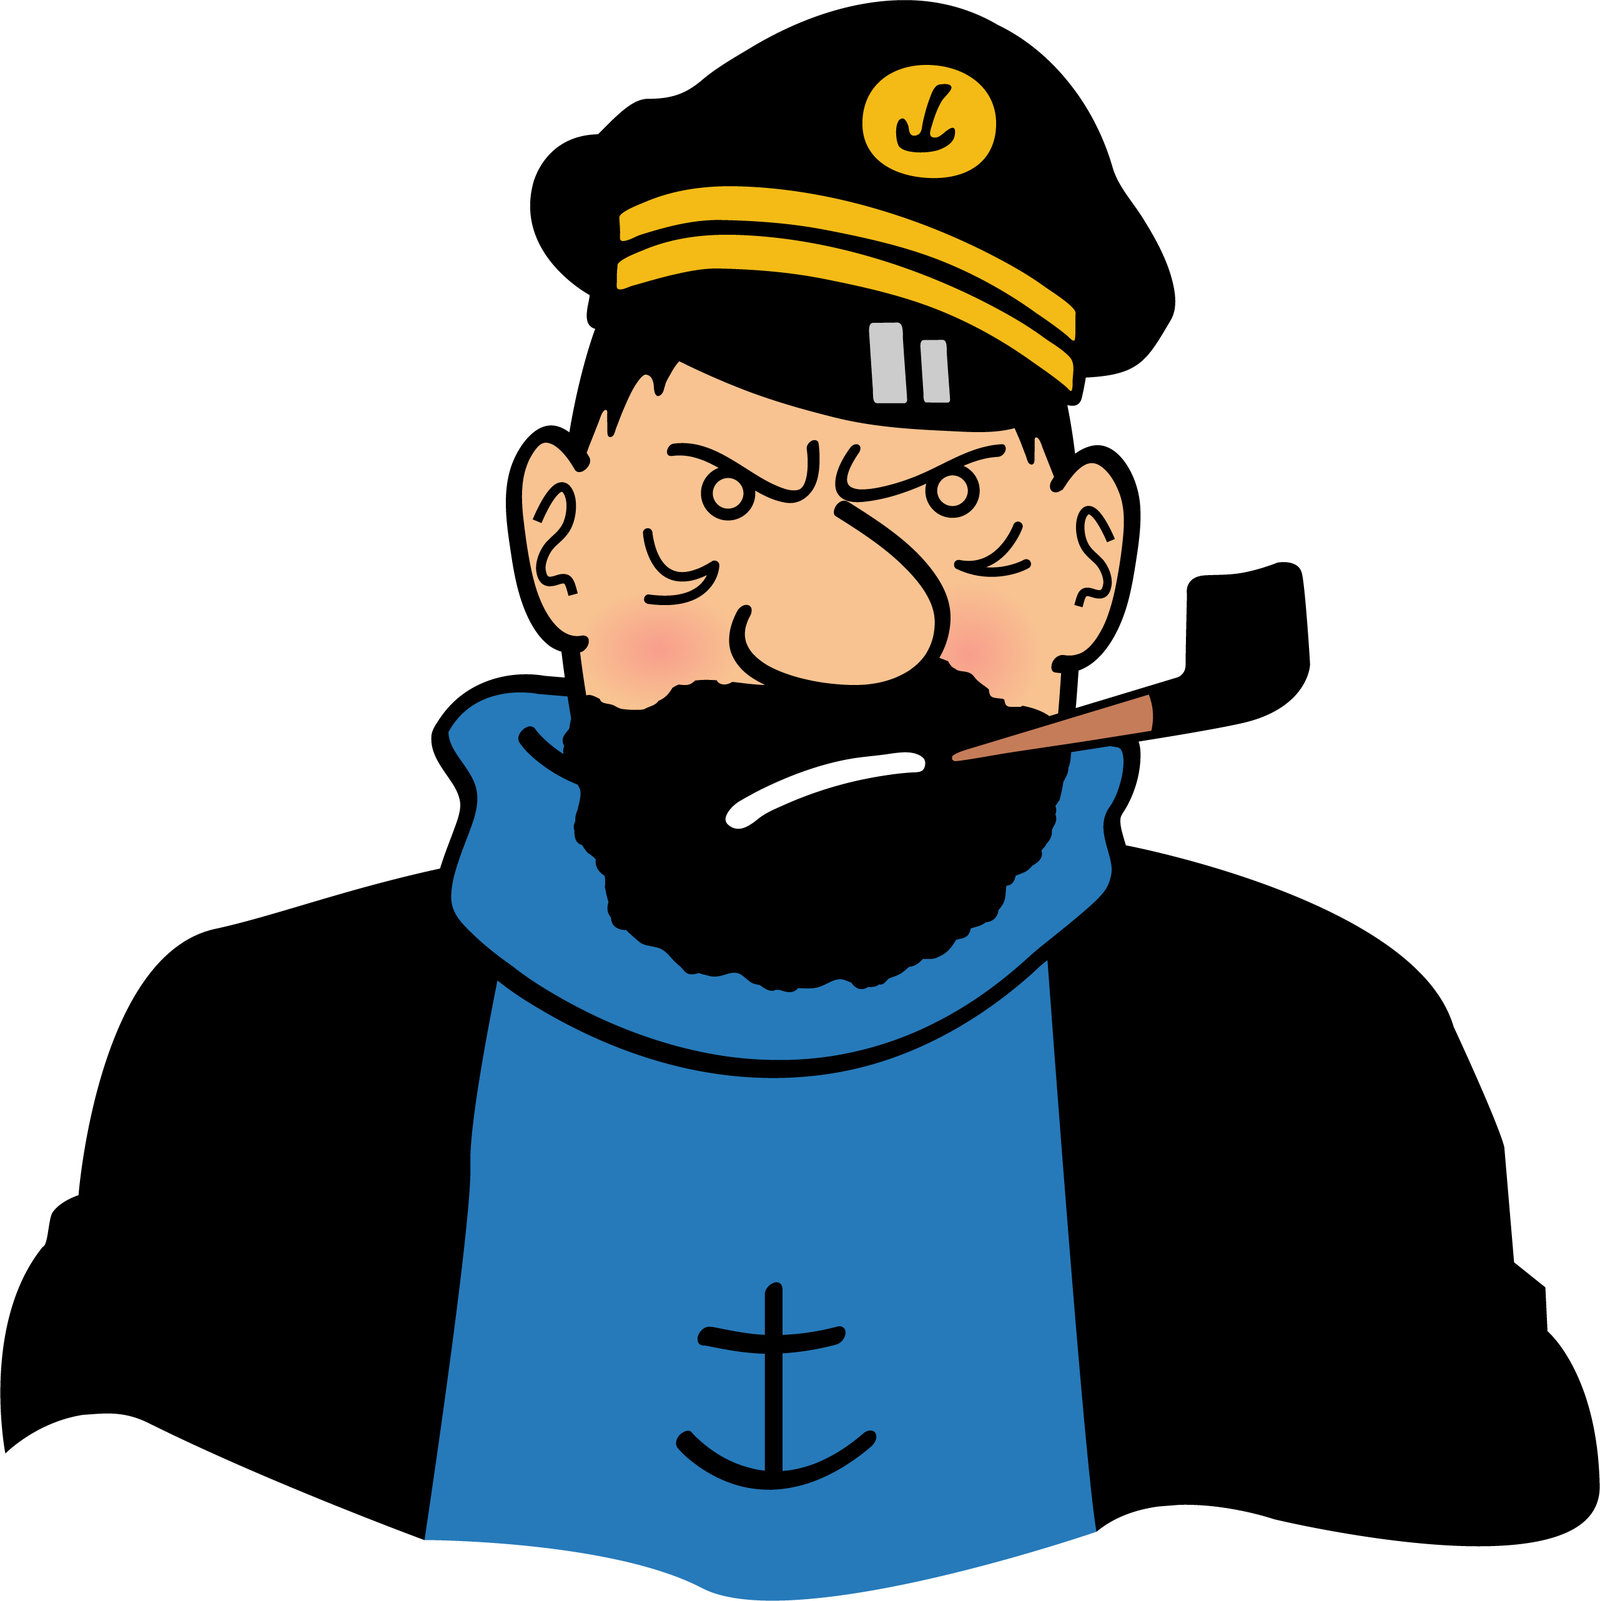 captain_haddock_in_a_bad_mood_by_ironsid0r-d6zl3om.jpg